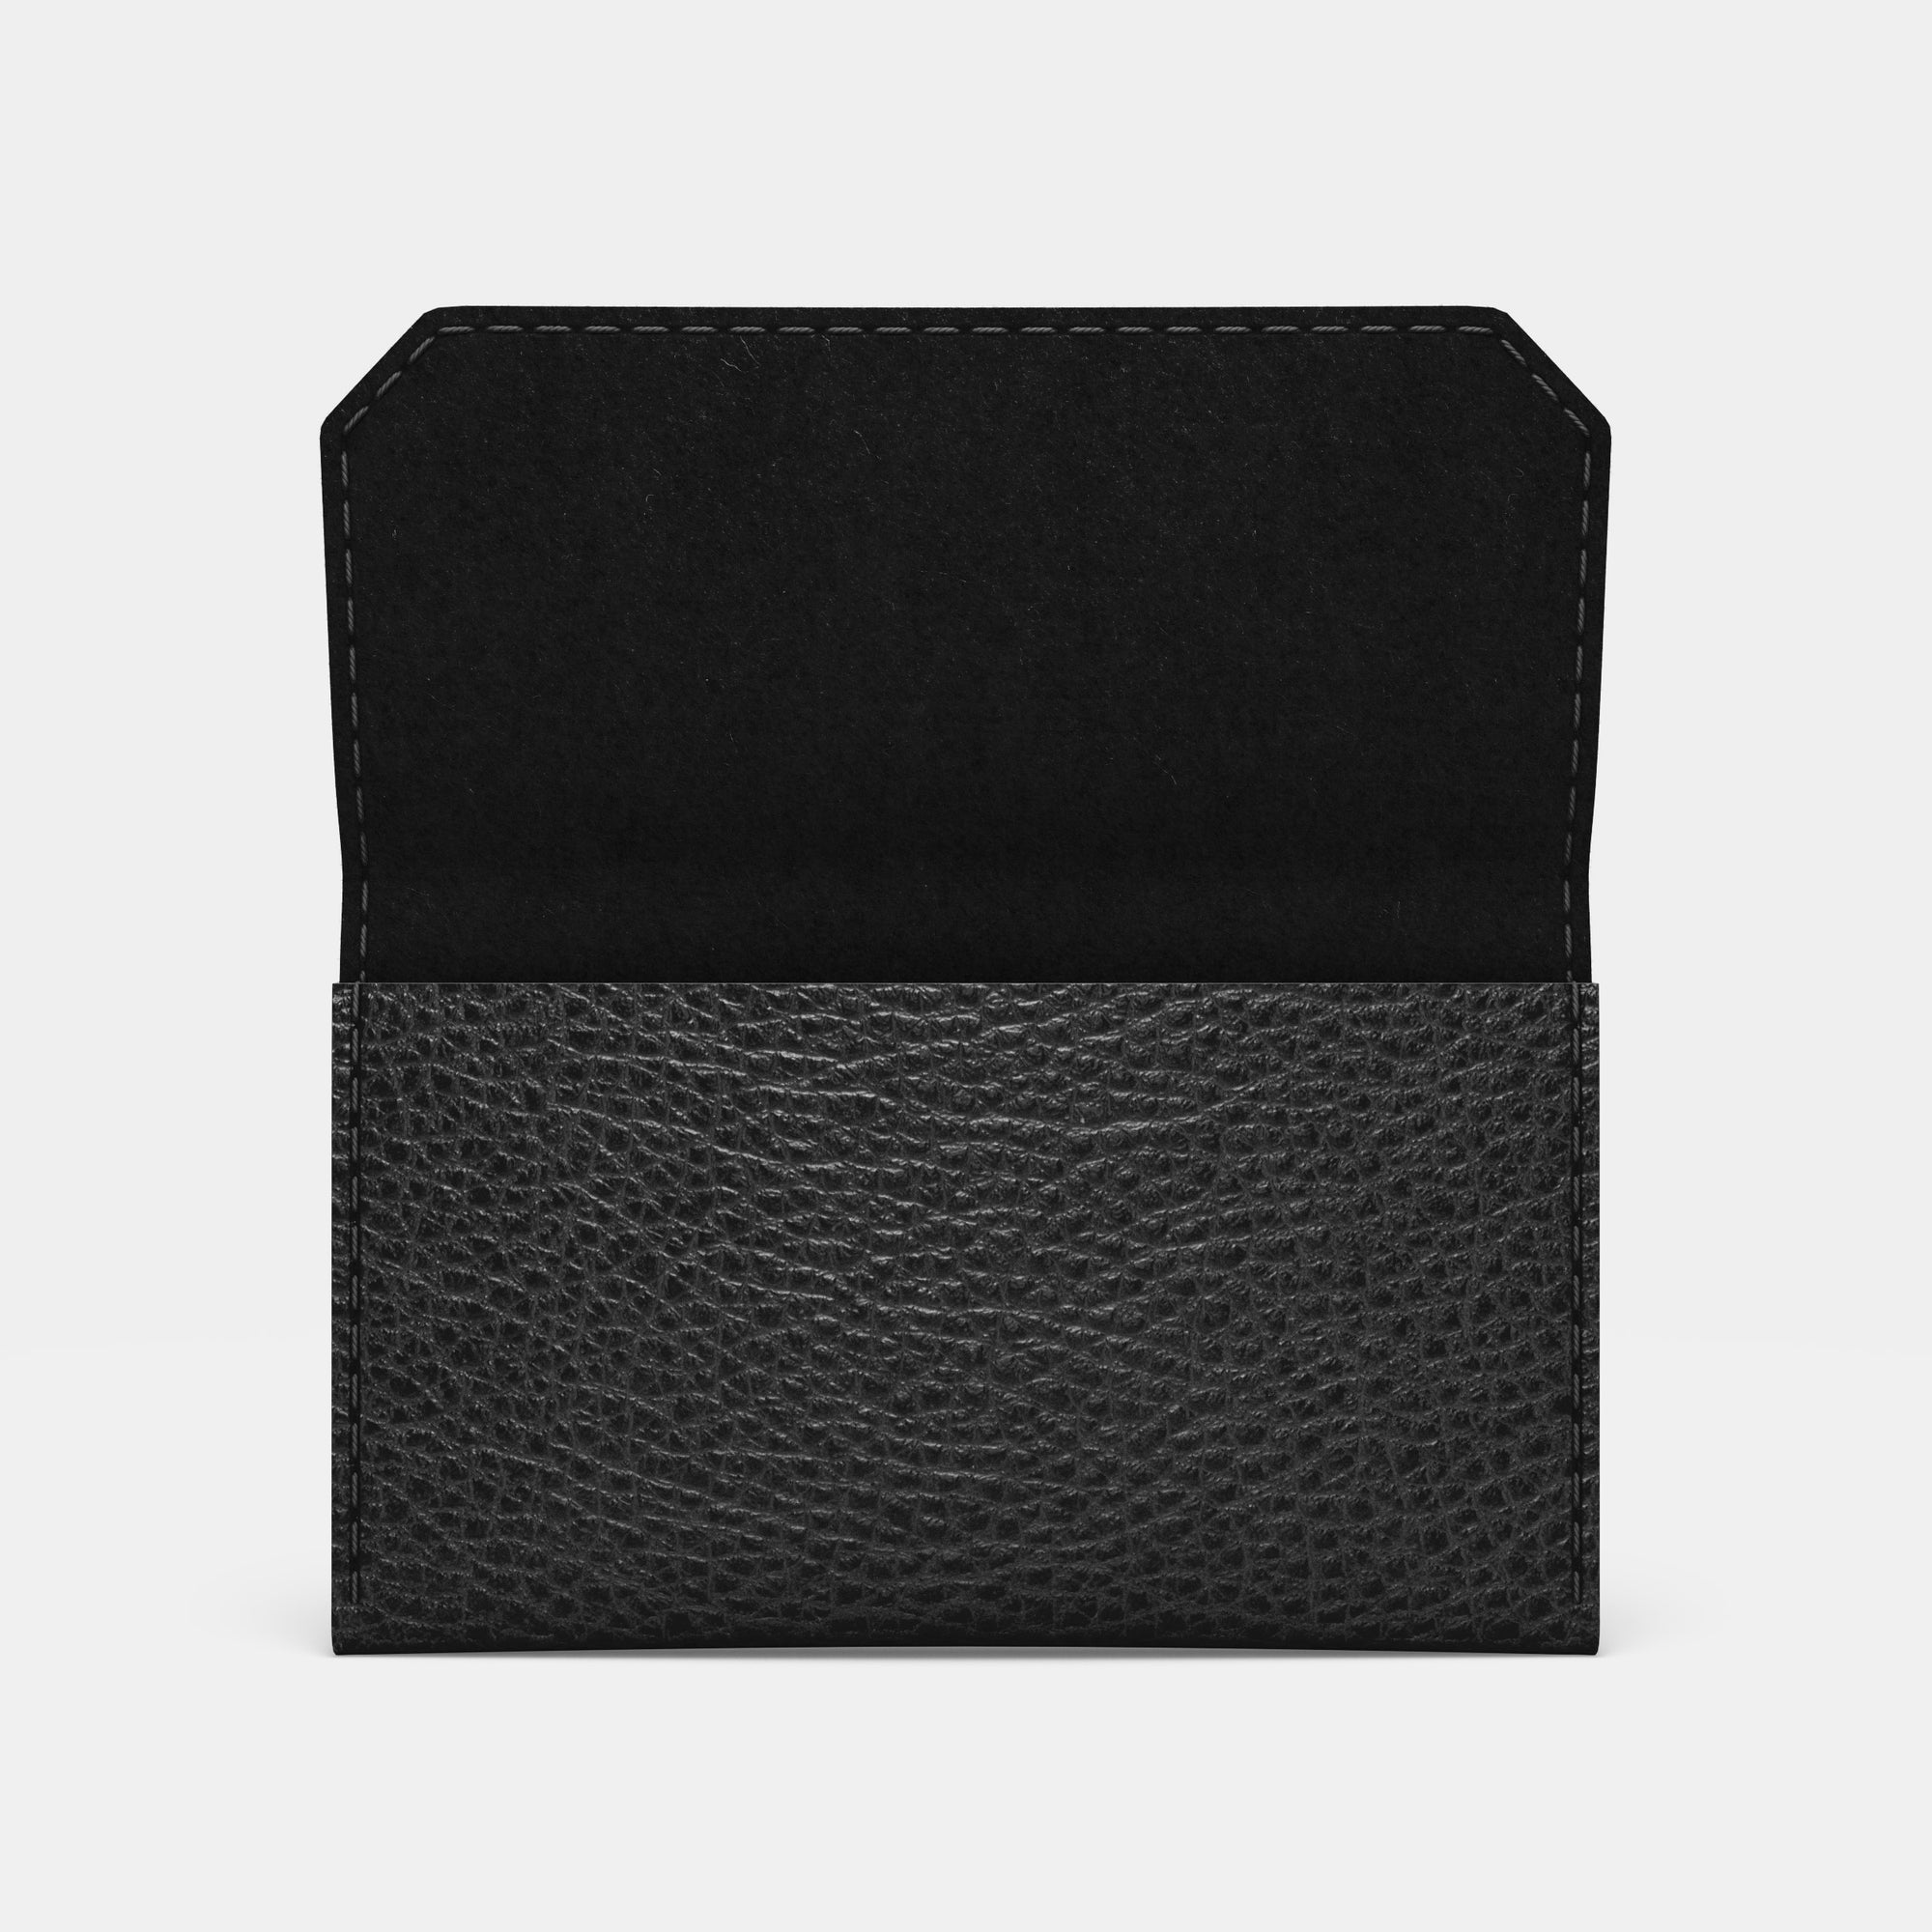 Carry-all Wallet - Black and Black - RYAN London